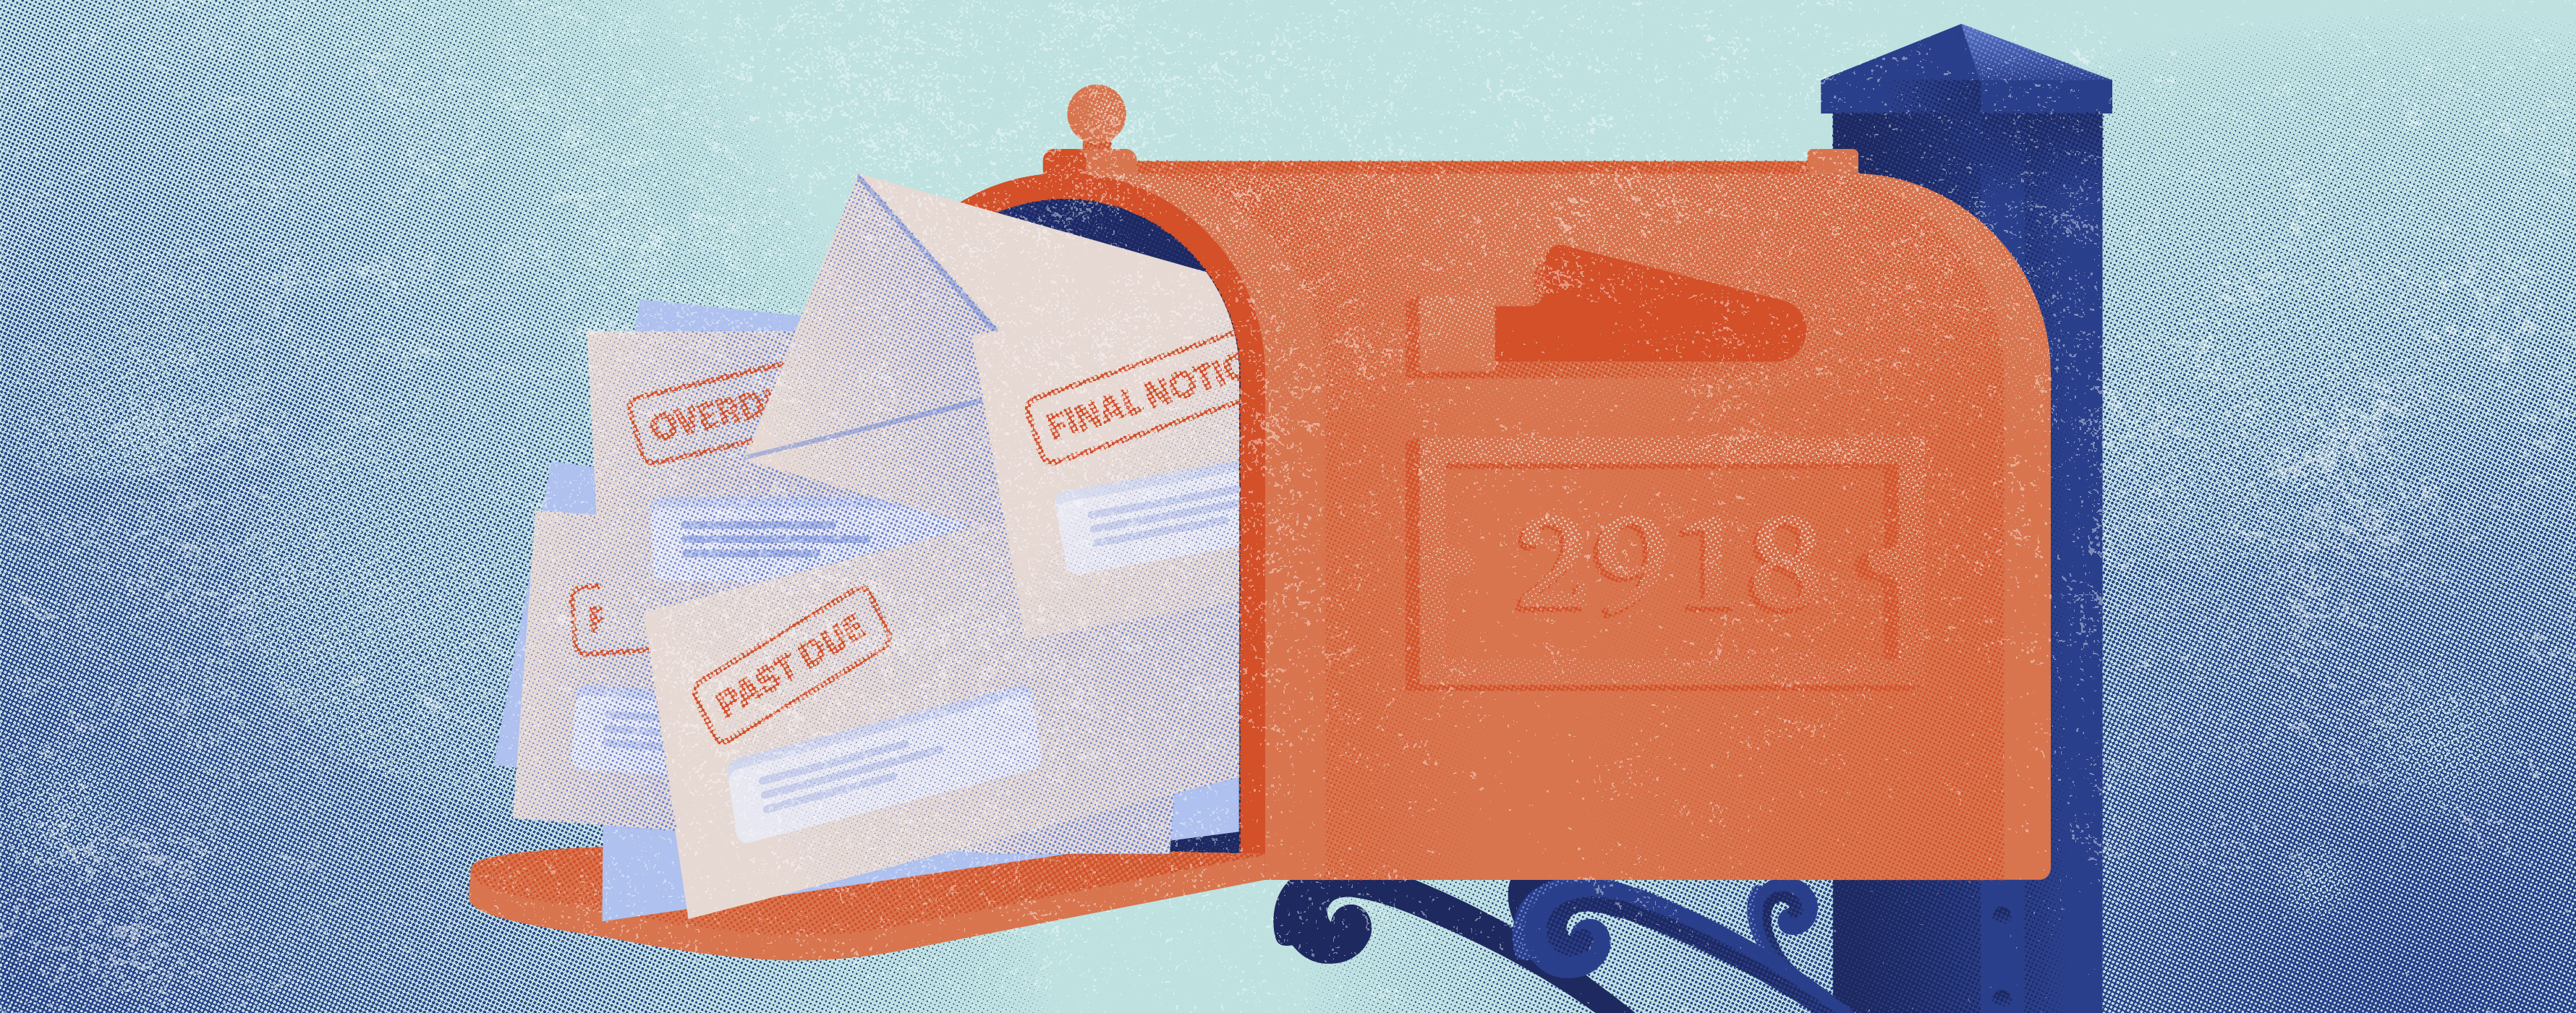 credit card minimum payment past due in mailbox